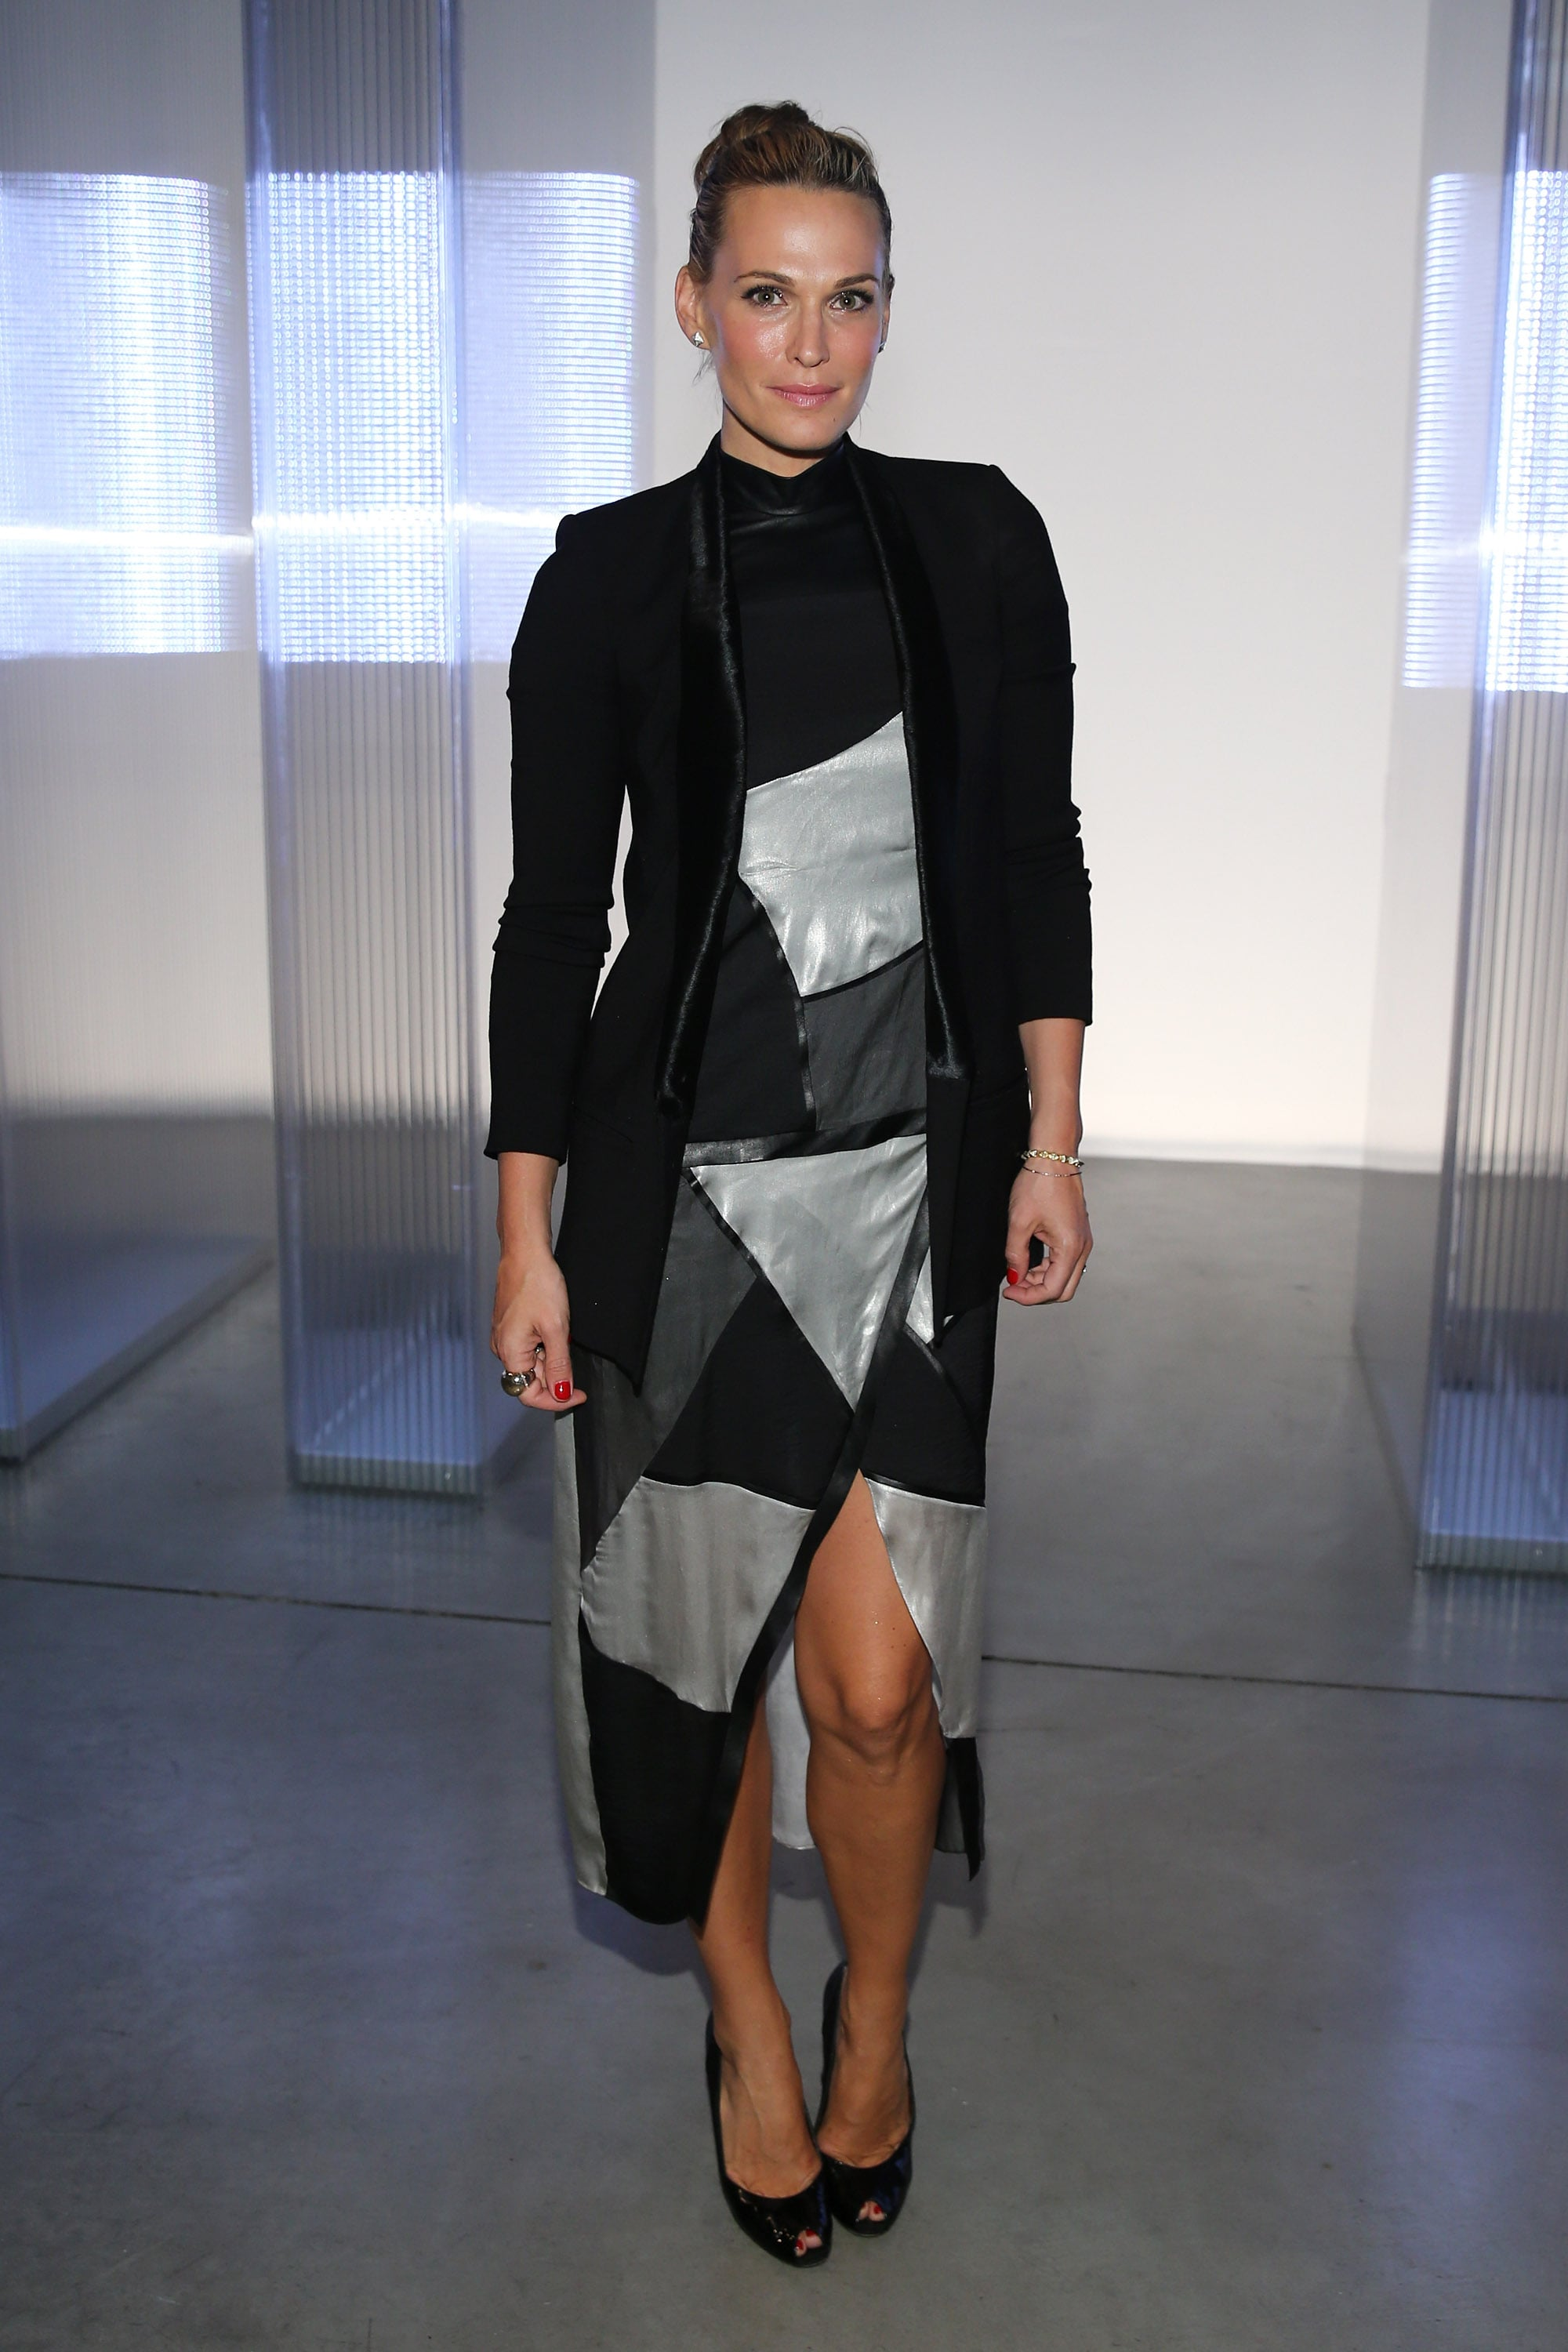 Molly Sims posed for photos during the Helmut Lang presentation on Friday night.